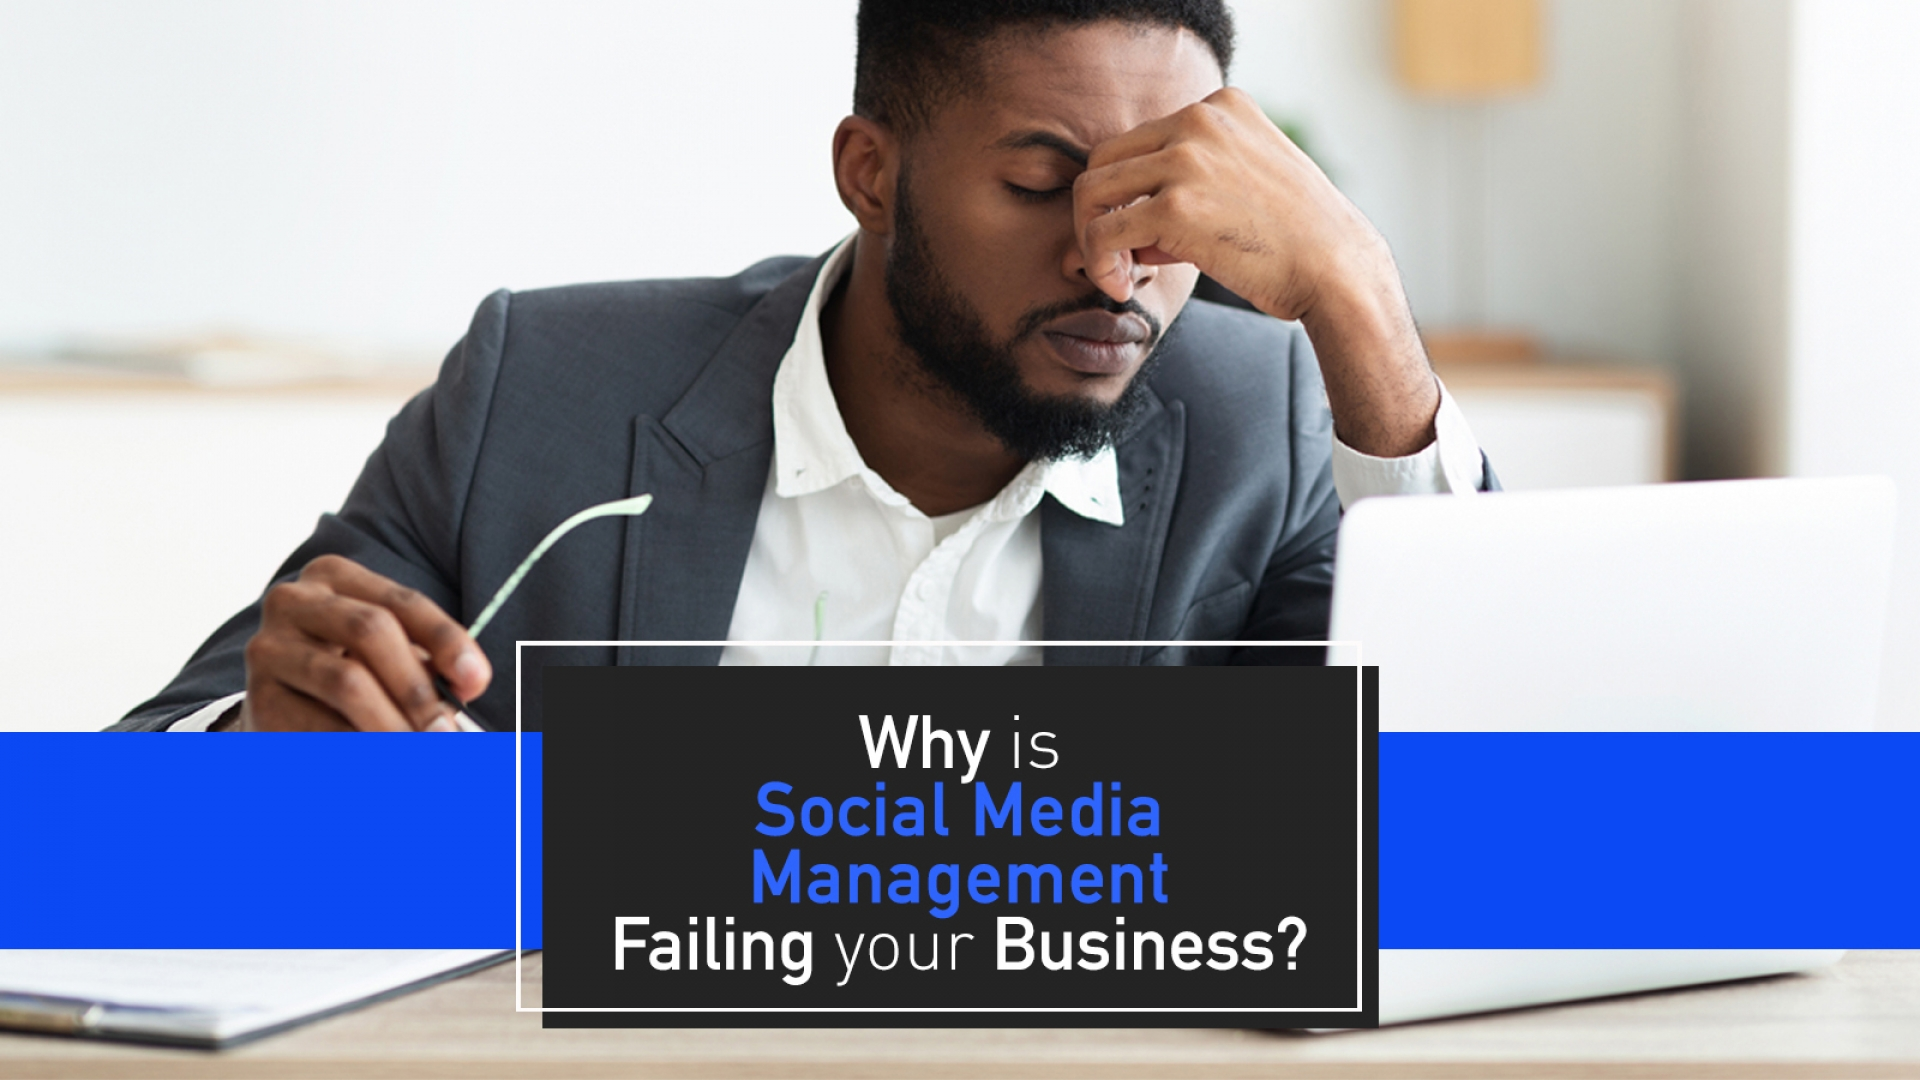 Why Social Media Management is Failing your Business in 2020